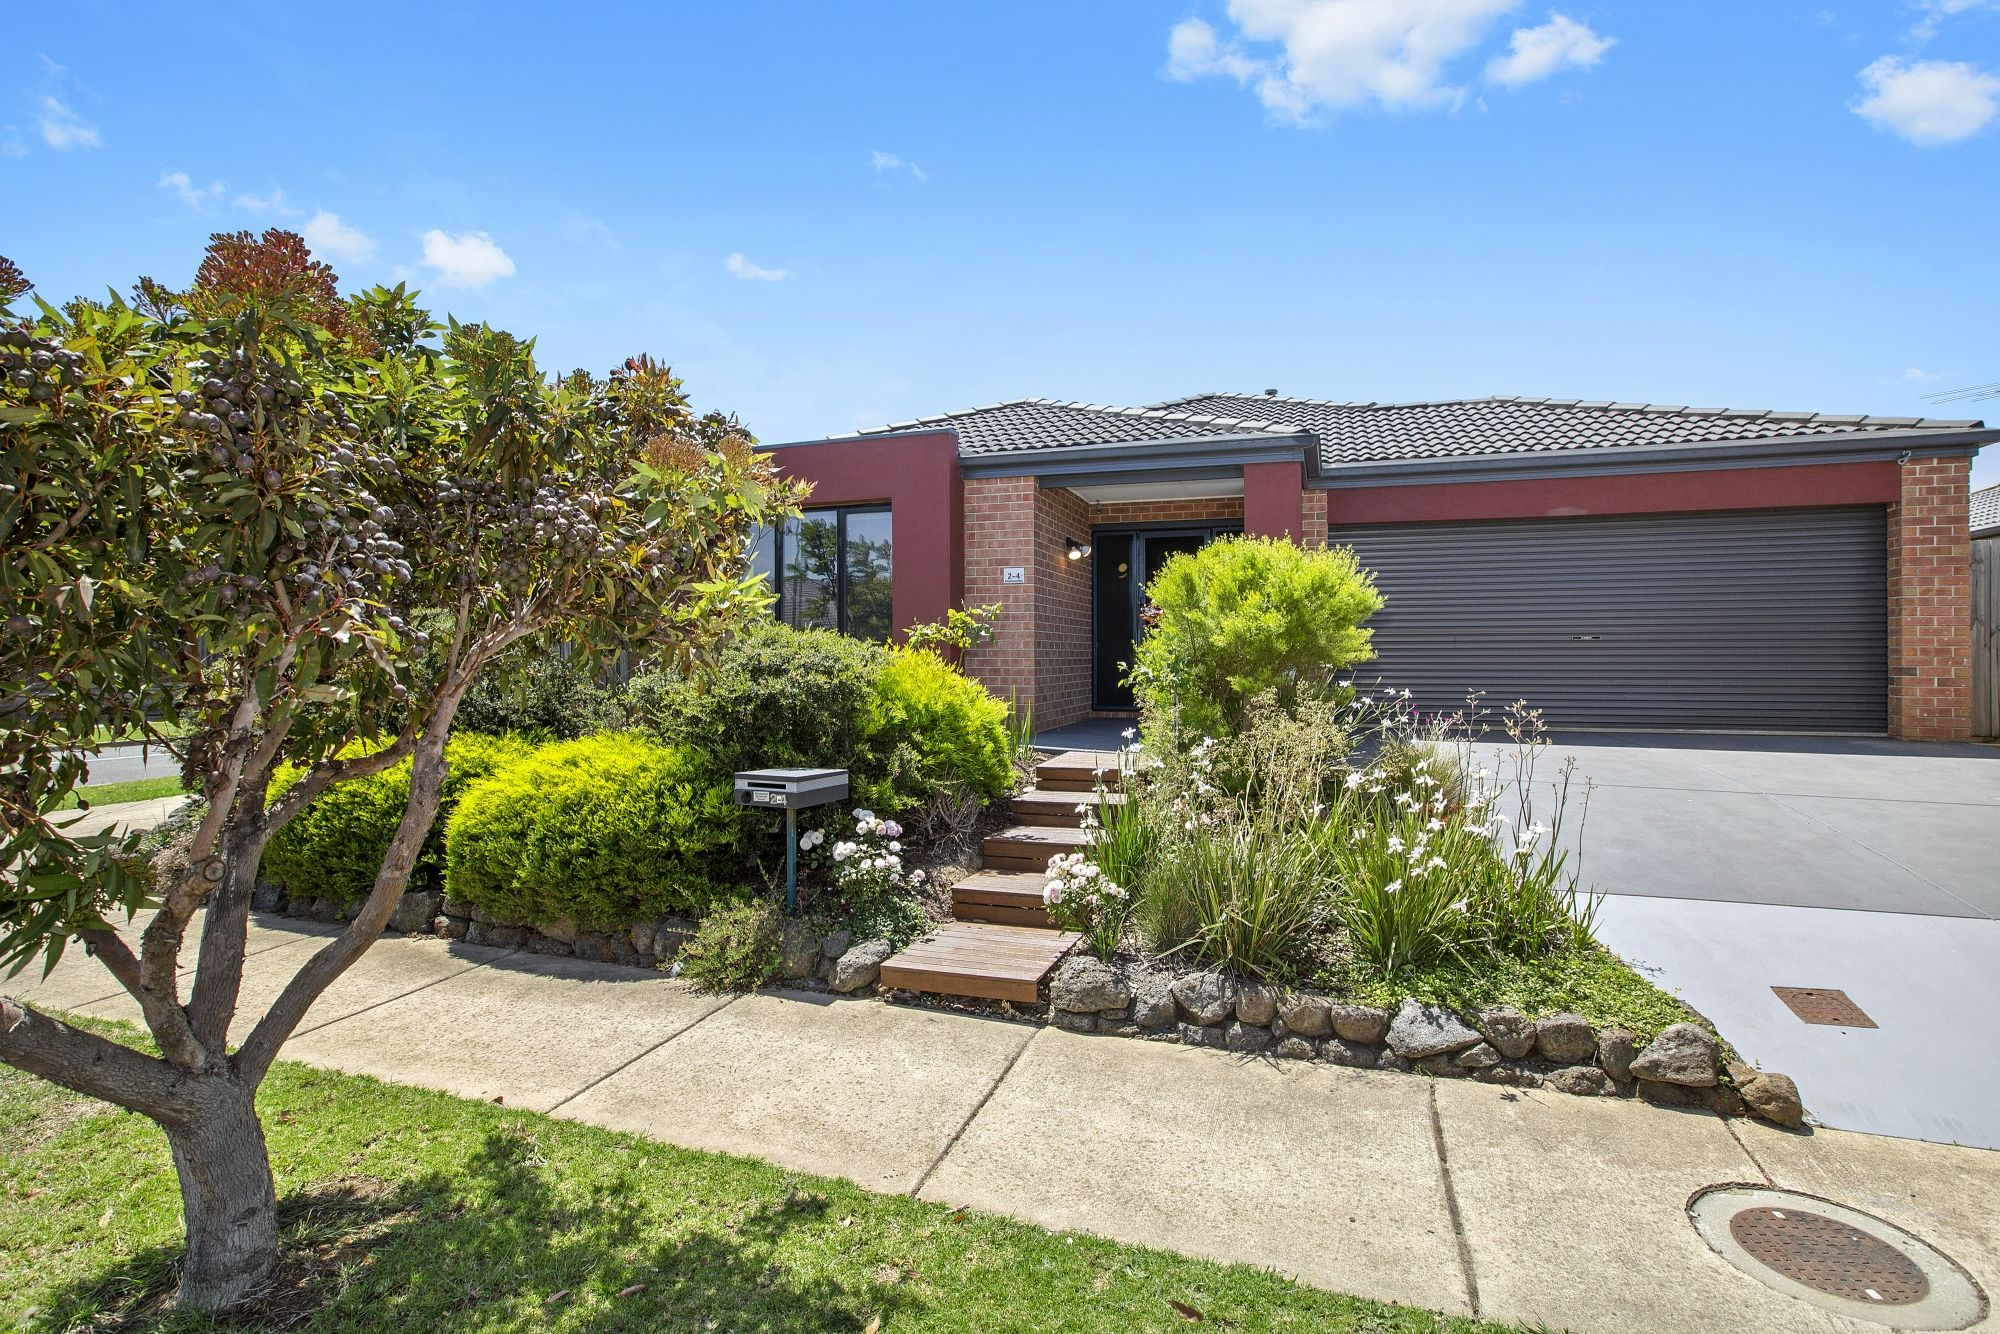 2-4 Amberwood Way, Ocean Grove VIC 3226